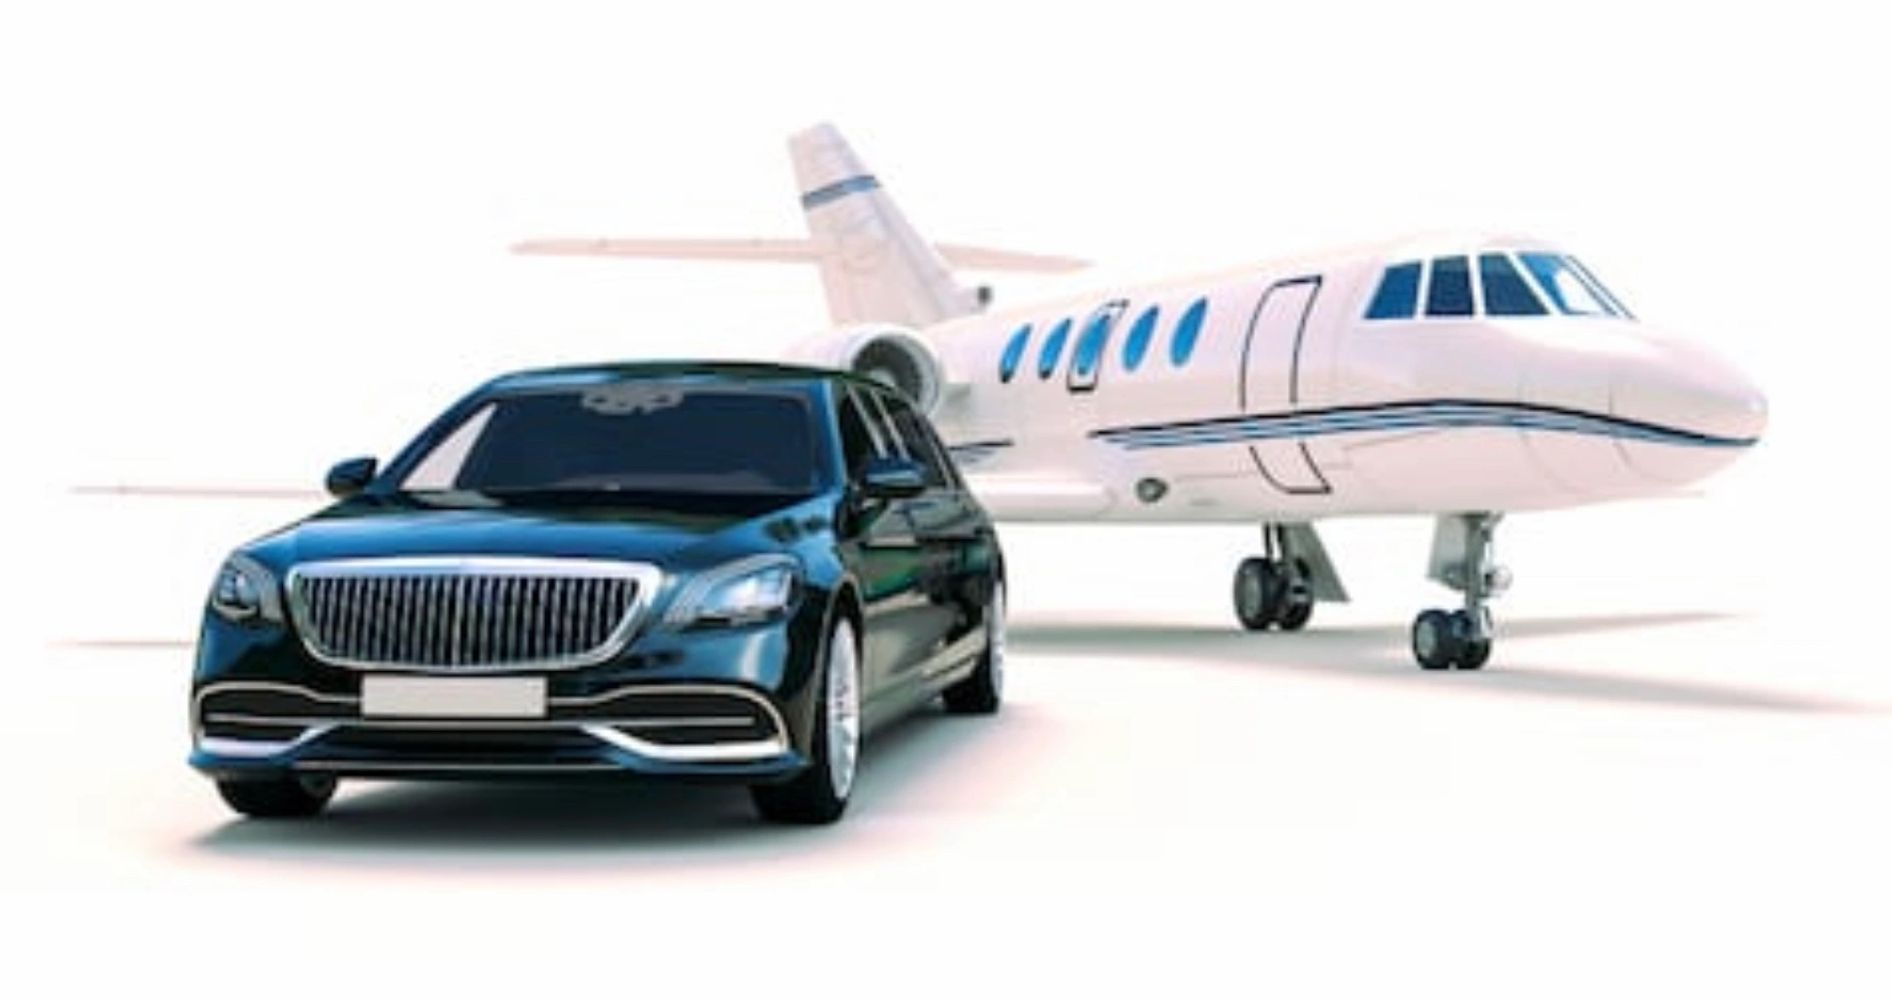 Palm beach airport Car service, West Palm beach limousines, Palm beach airport limousines, Shuttle